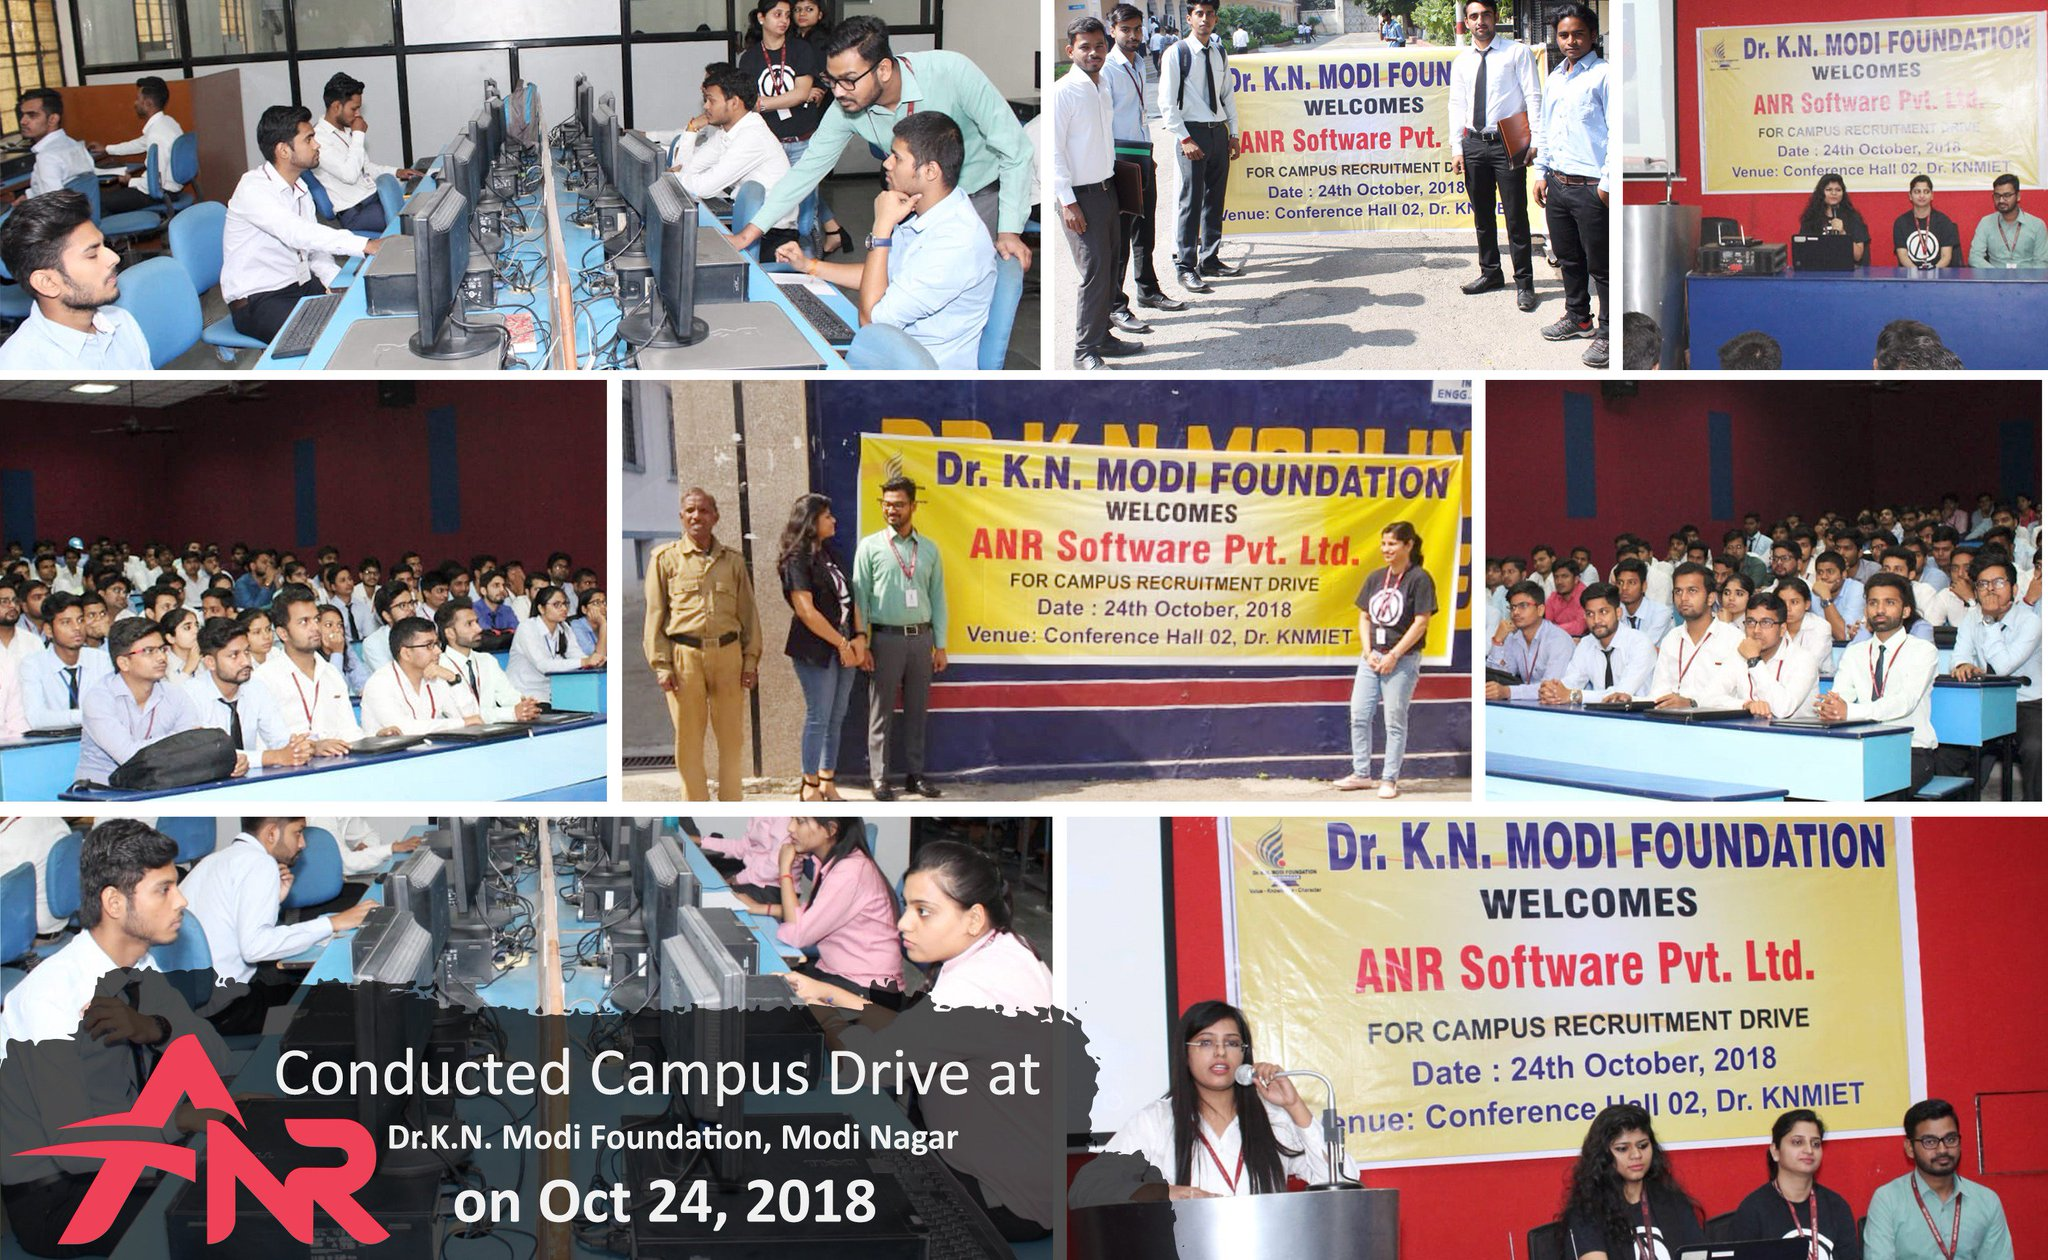 Anr Software Pvt Ltd On Twitter Anr Software Pvt Ltd Conducted Campus Drive At Dr K N Modi Foundation Modinagar On Oct 24th 2018 Campusdrive Hiring Anr Software Pvt Ltd Knmfoundation Https T Co E3x75tepcq